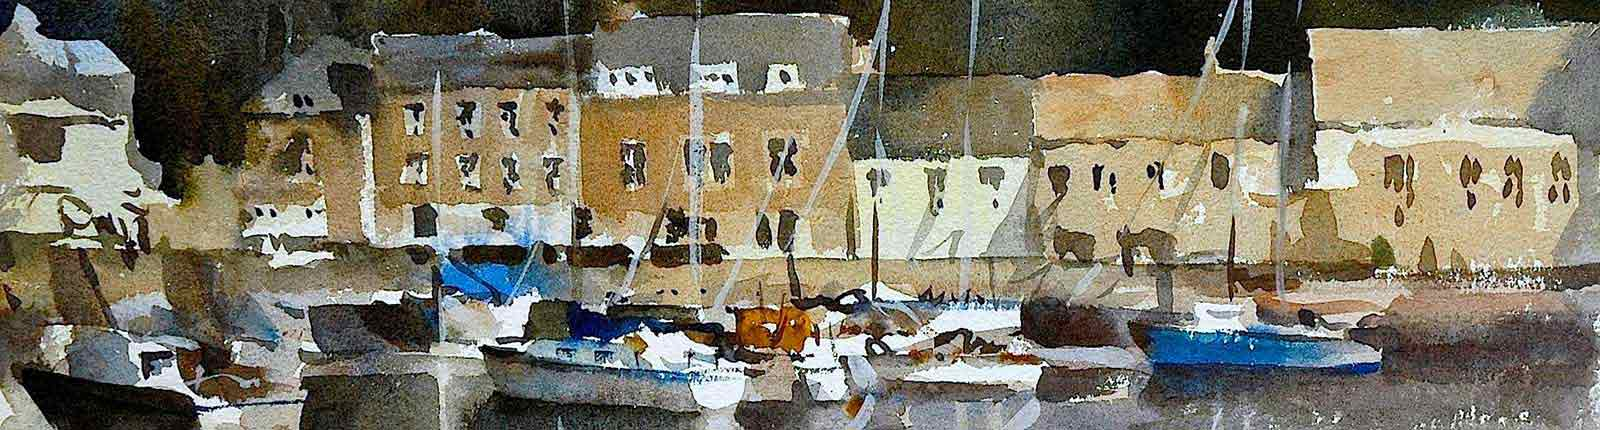 Painting of St Ives, watercolor by artist Trevor Waugh